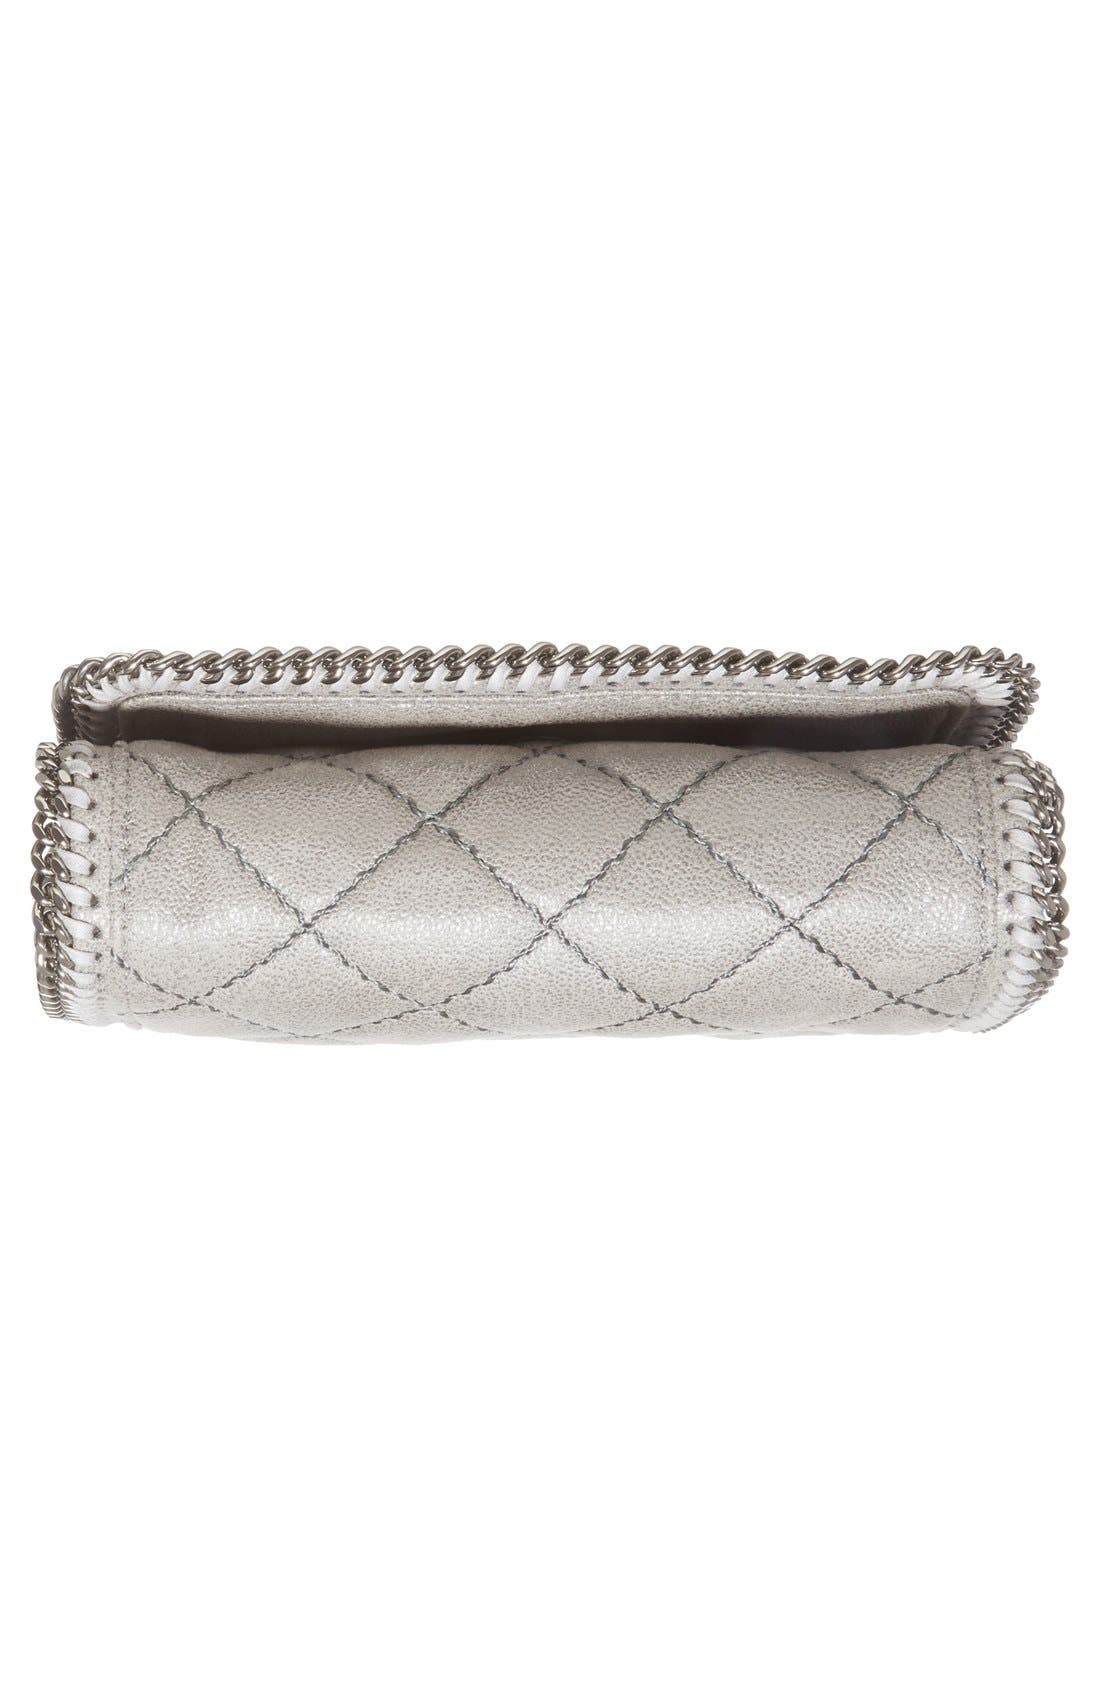 Alternate Image 3  - Stella McCartney 'Falabella' Quilted Faux Leather Crossbody Bag